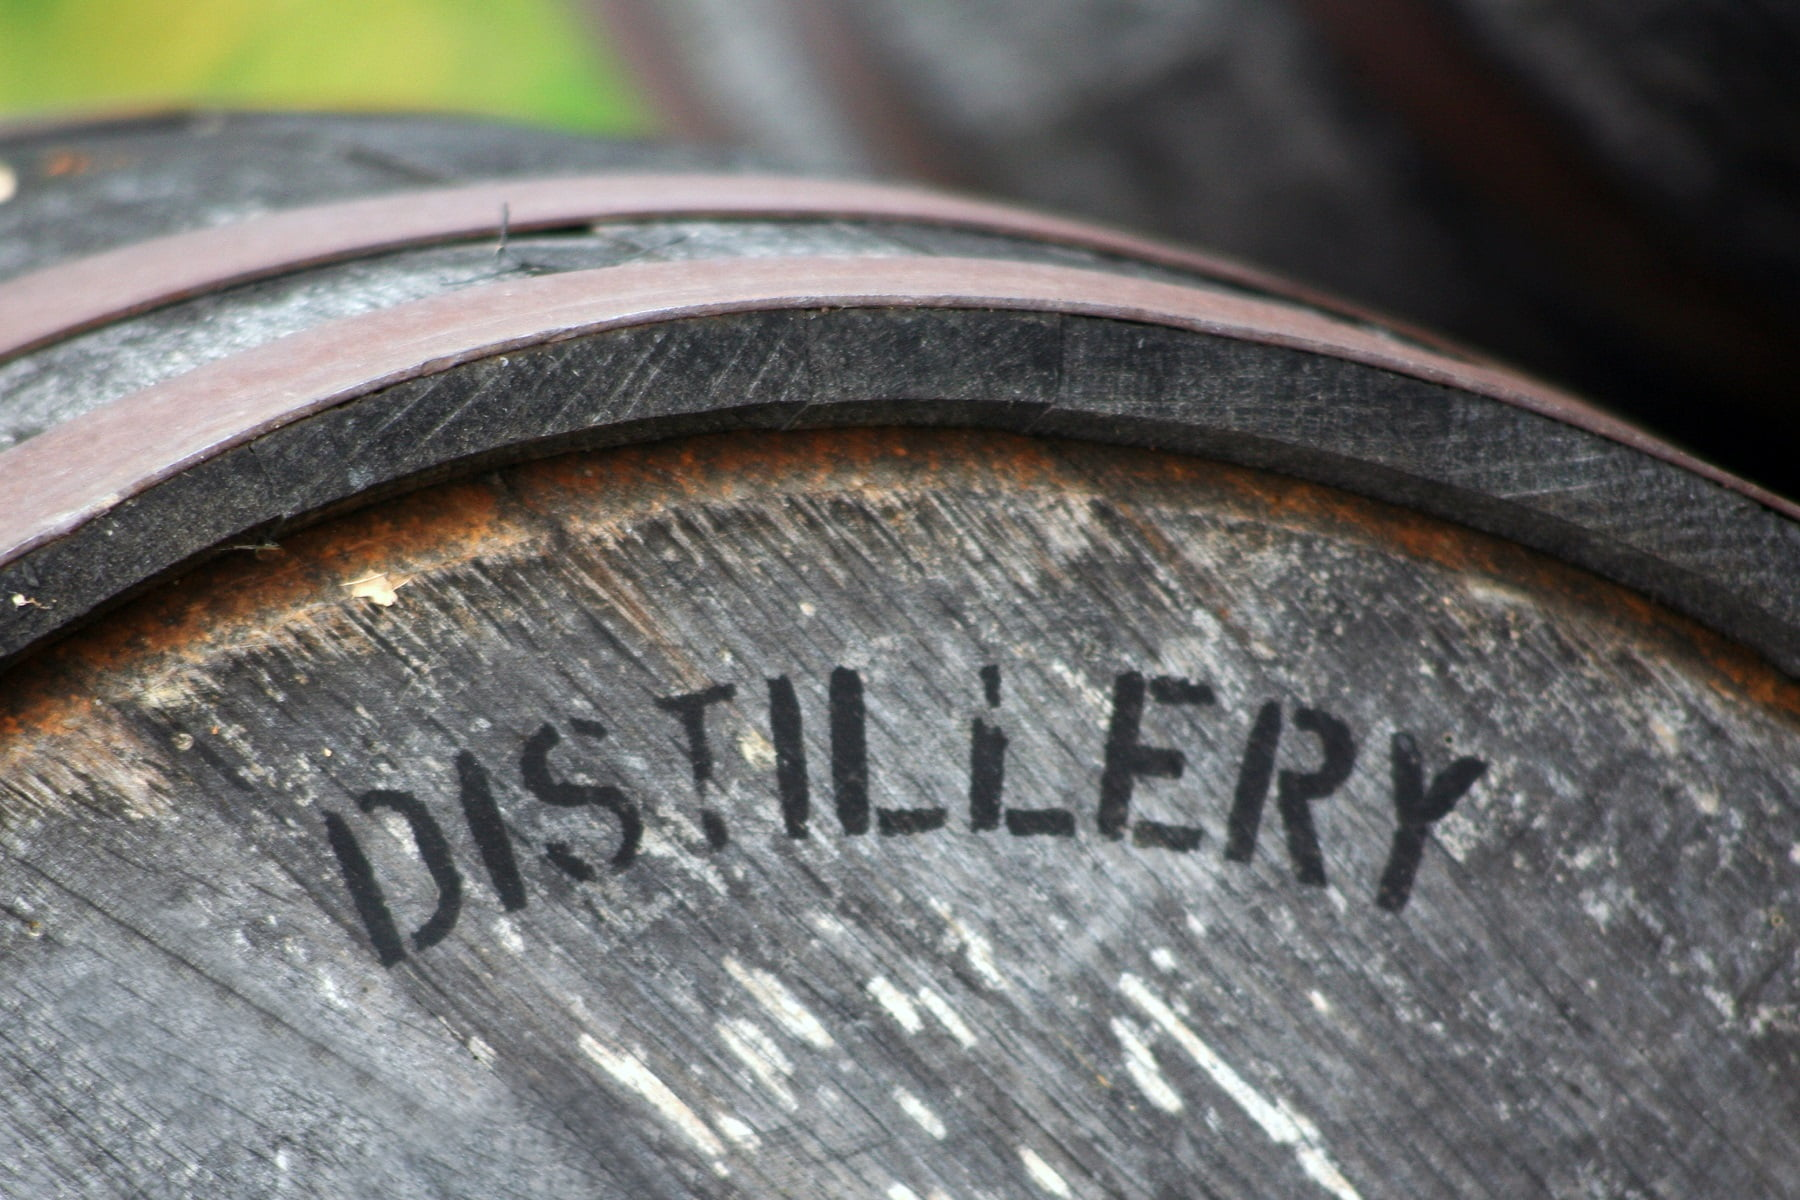 Barrel for aging whiskey